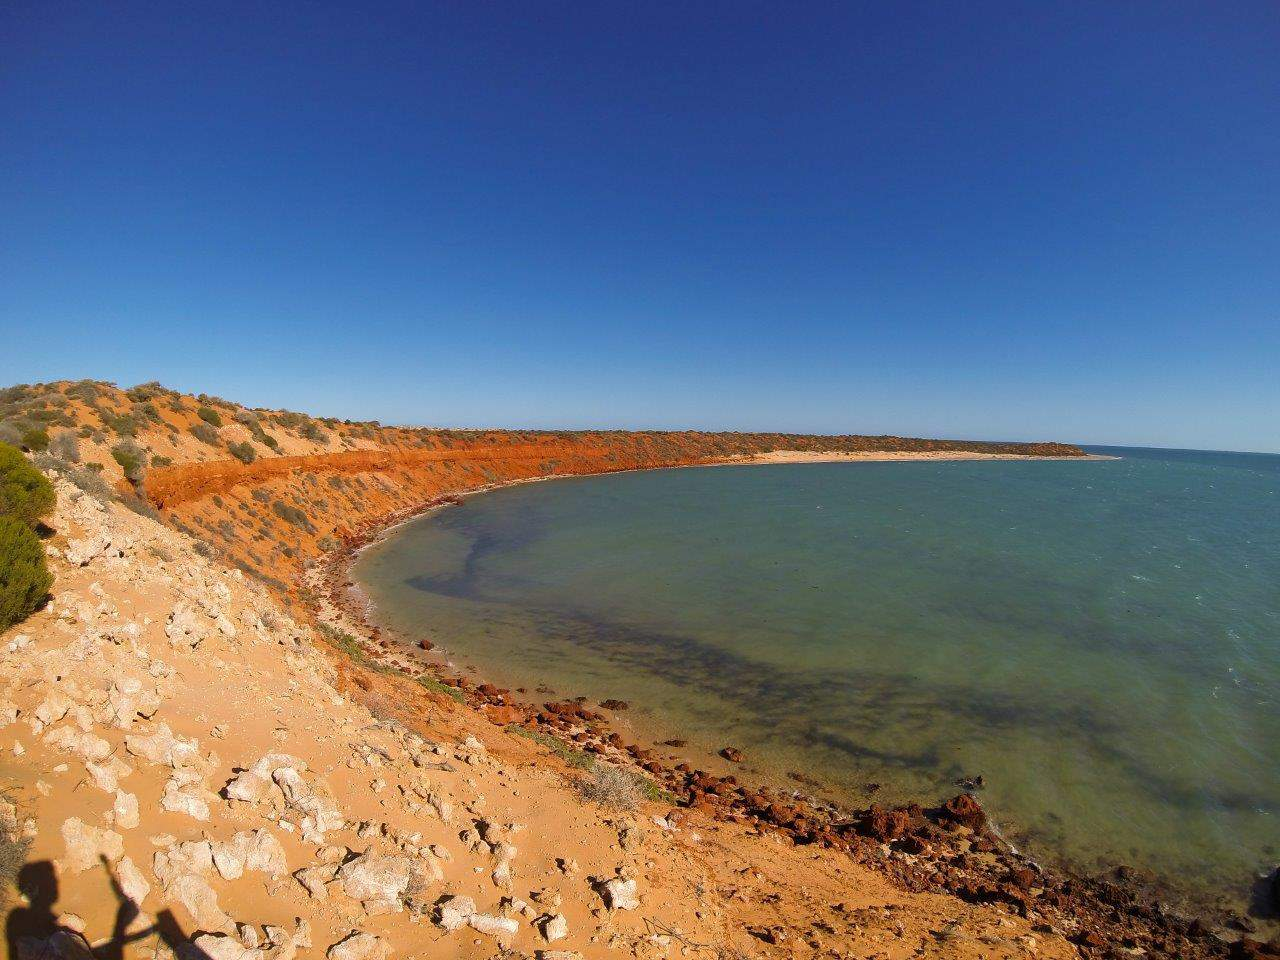 Skip Jack point lookout in Francois Peron National Park